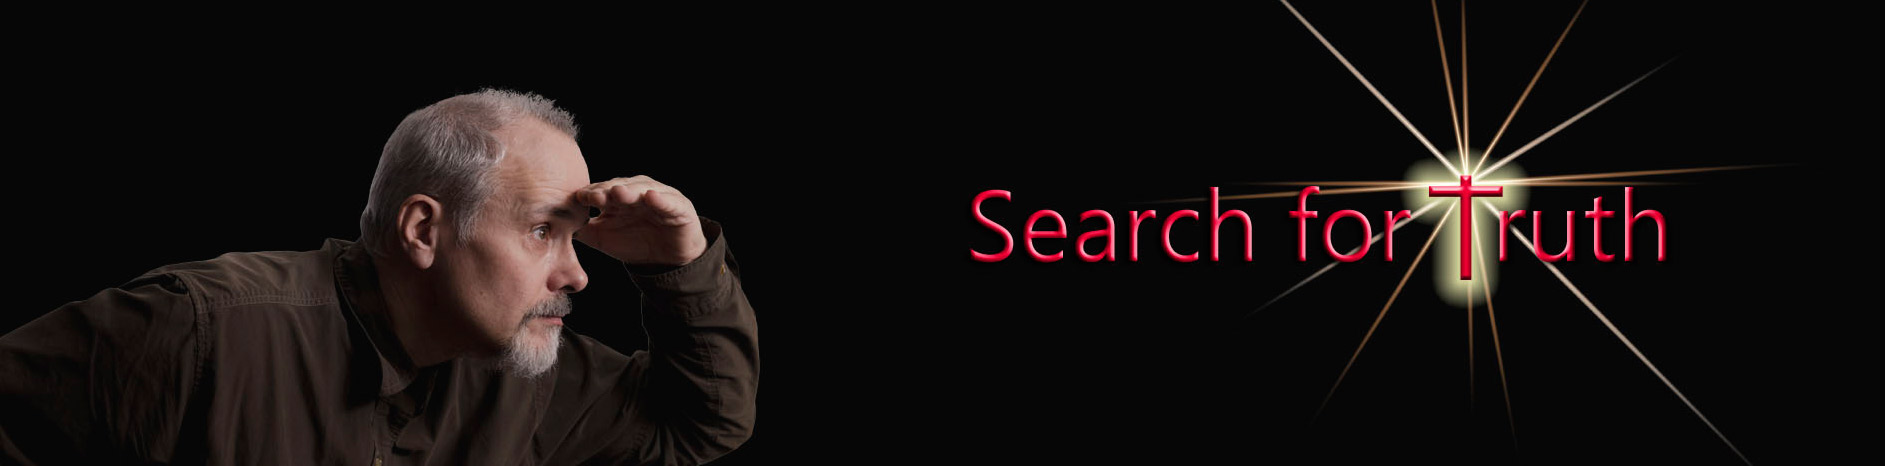 search-for-truth.org banner